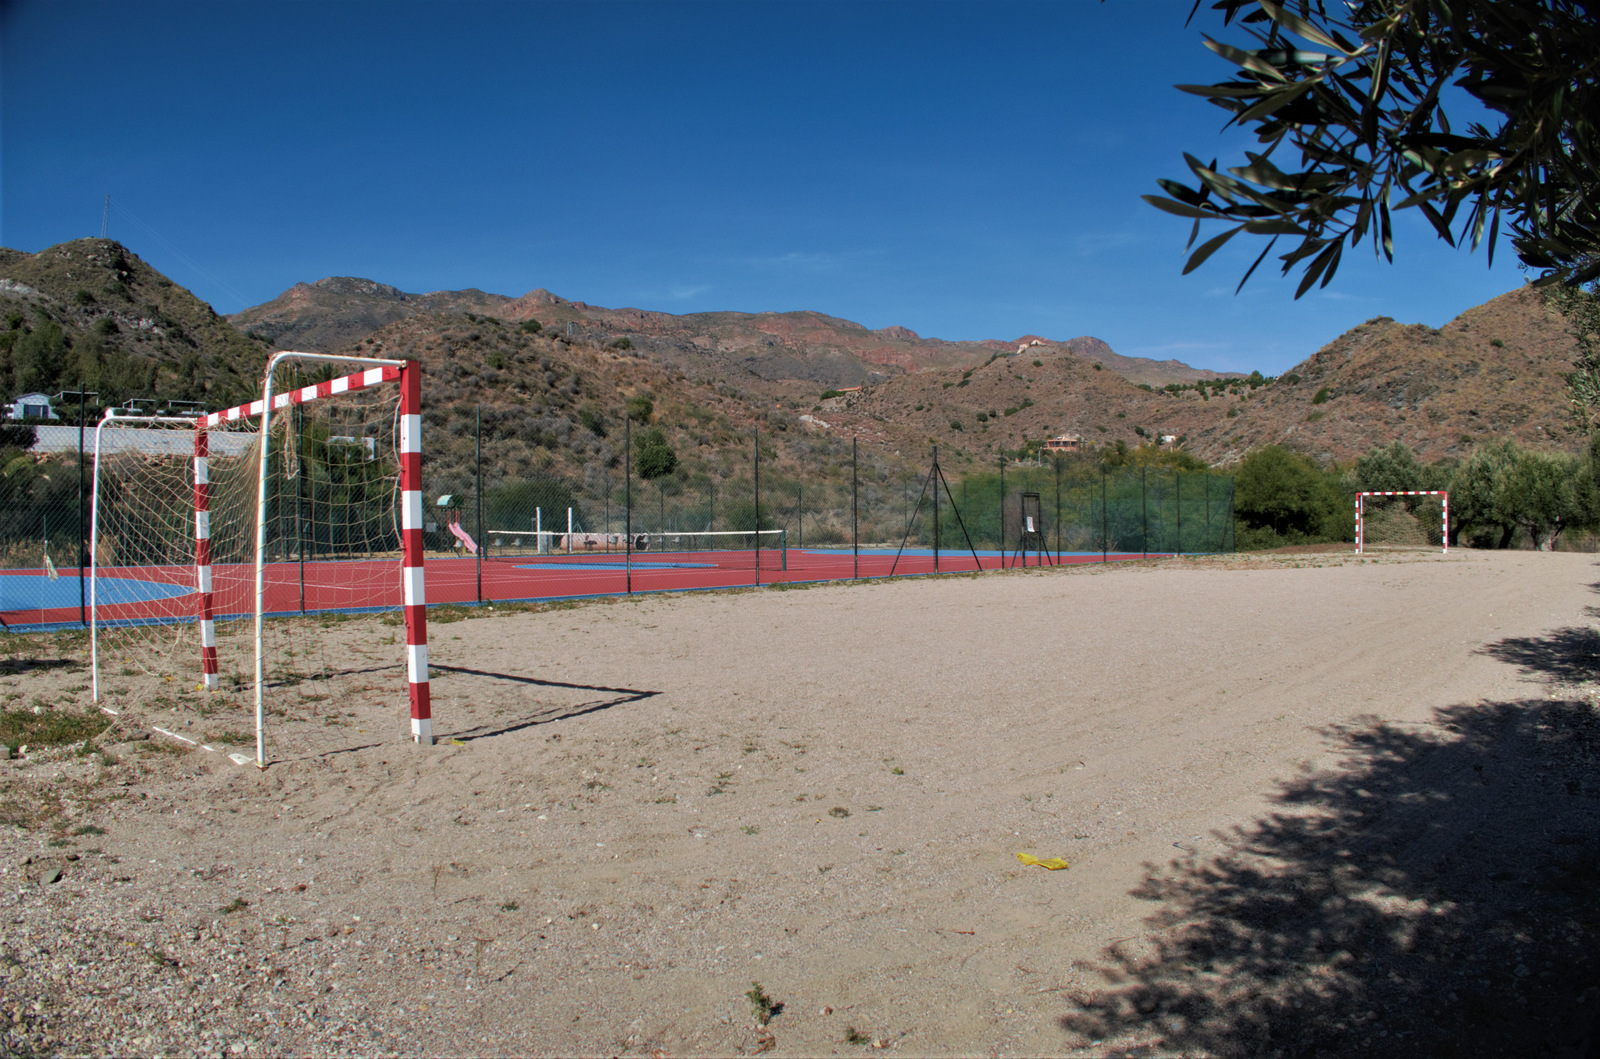 Football field Centro Vacacional Macenas